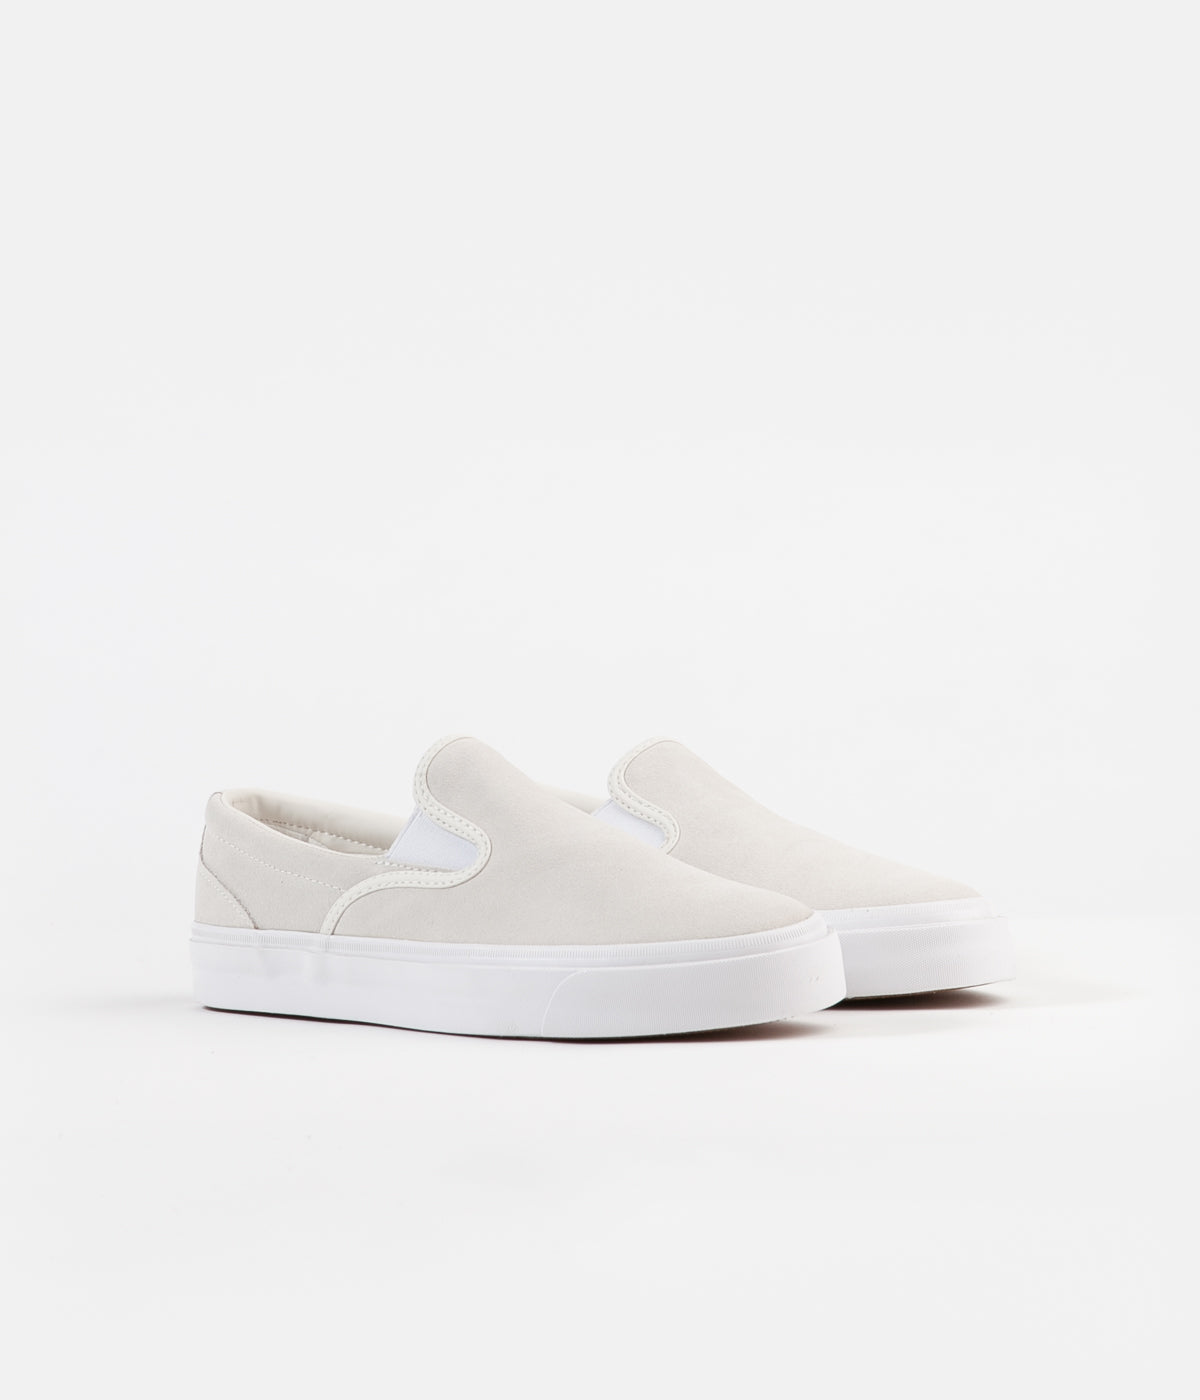 36174611115c ... Converse One Star CC Slip On Shoes - Egret   Navy   White ...